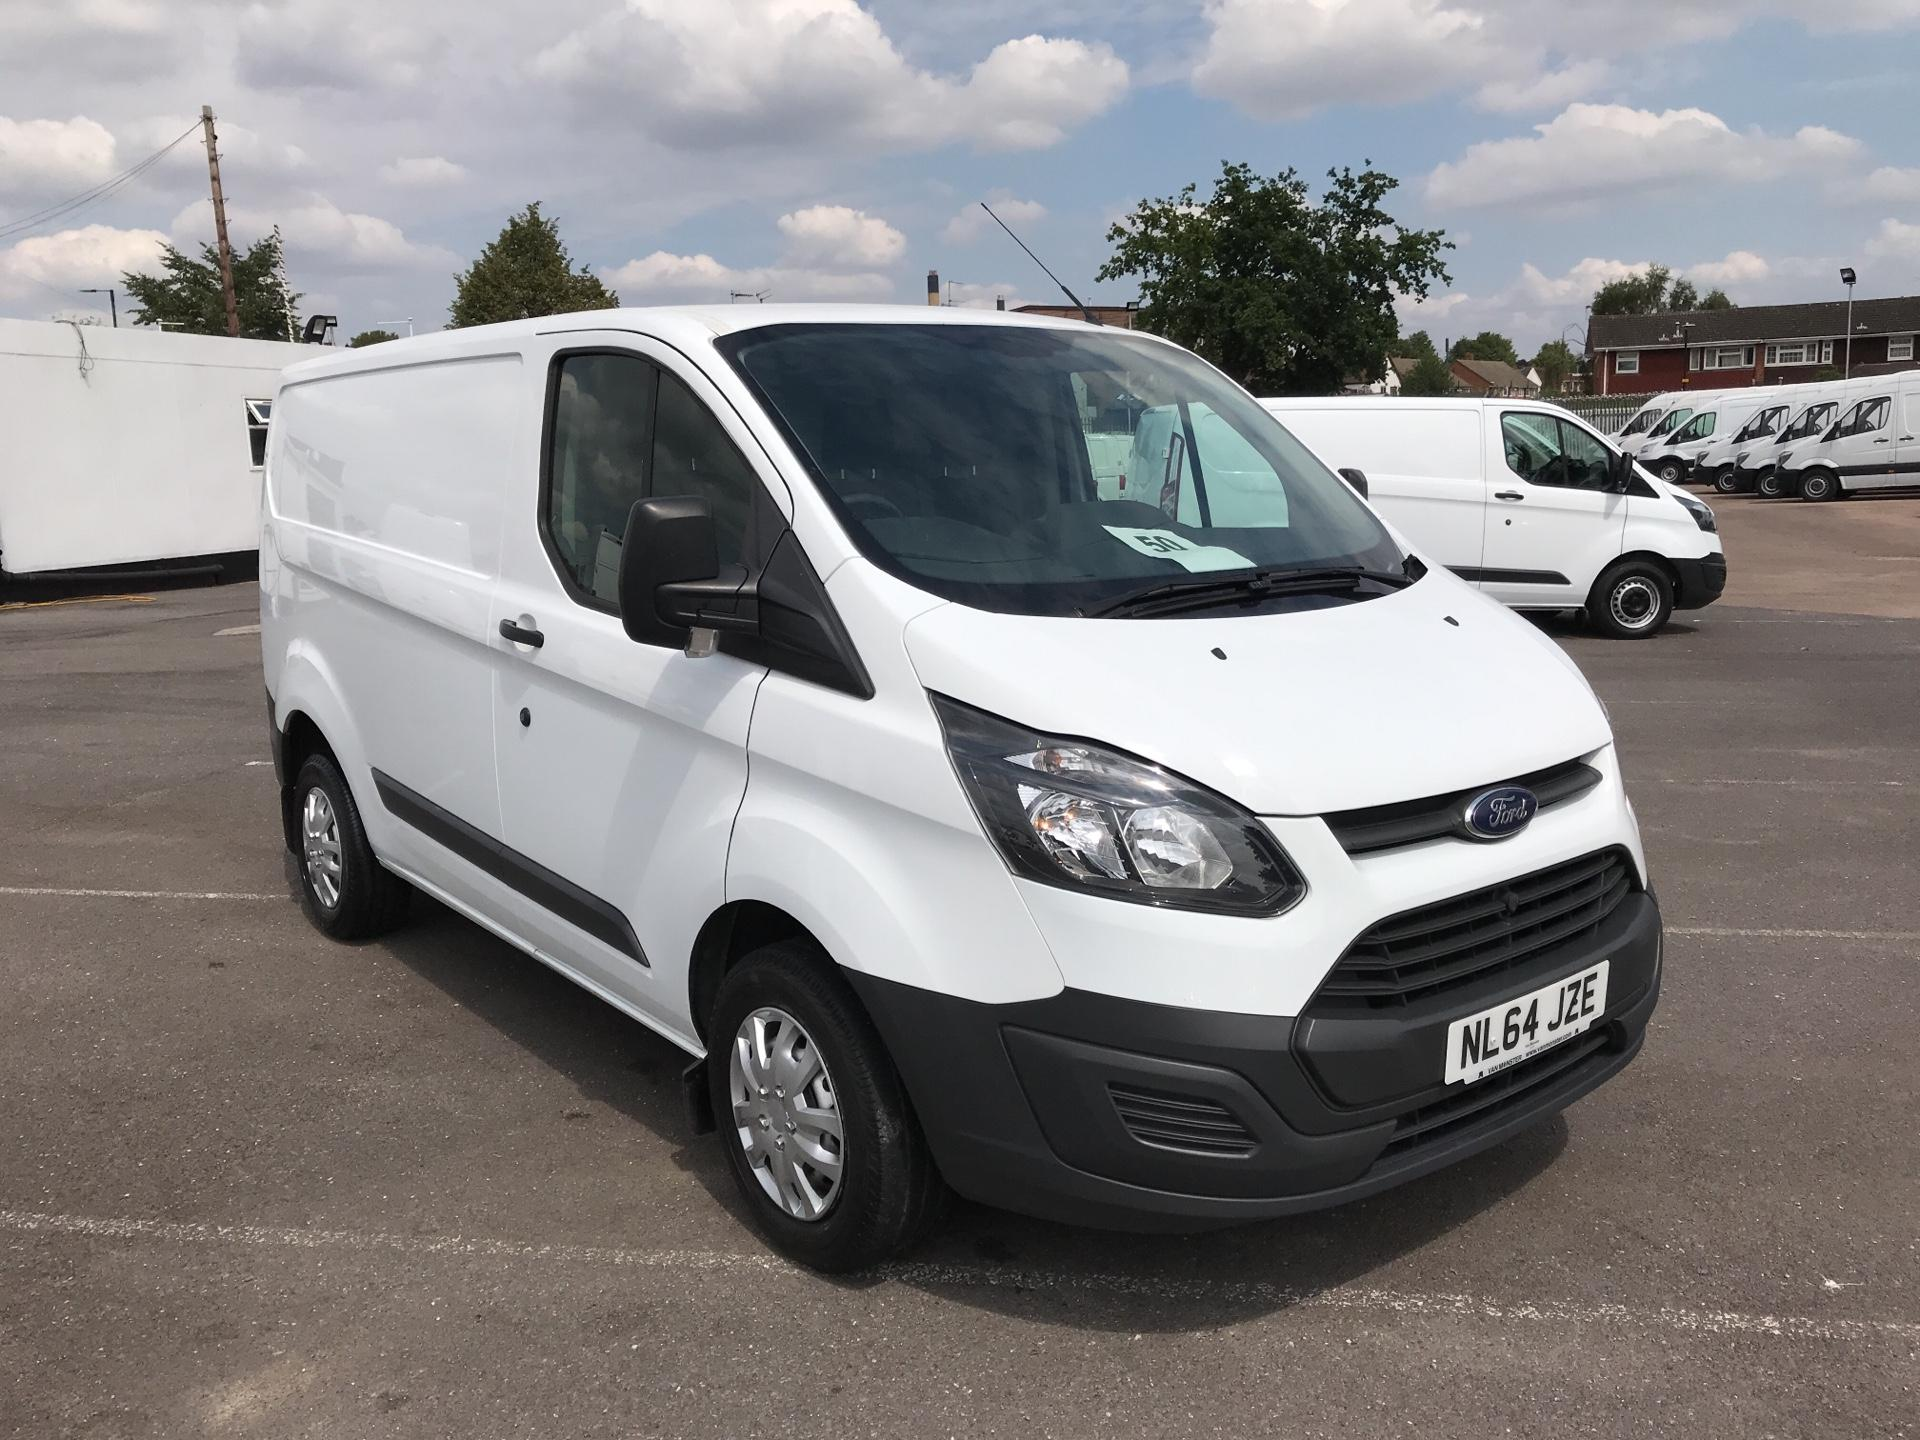 2014 Ford Transit Custom  290 L1 DIESEL FWD 2.2  TDCI 100PS LOW ROOF VAN EURO 5 (NL64JZE)